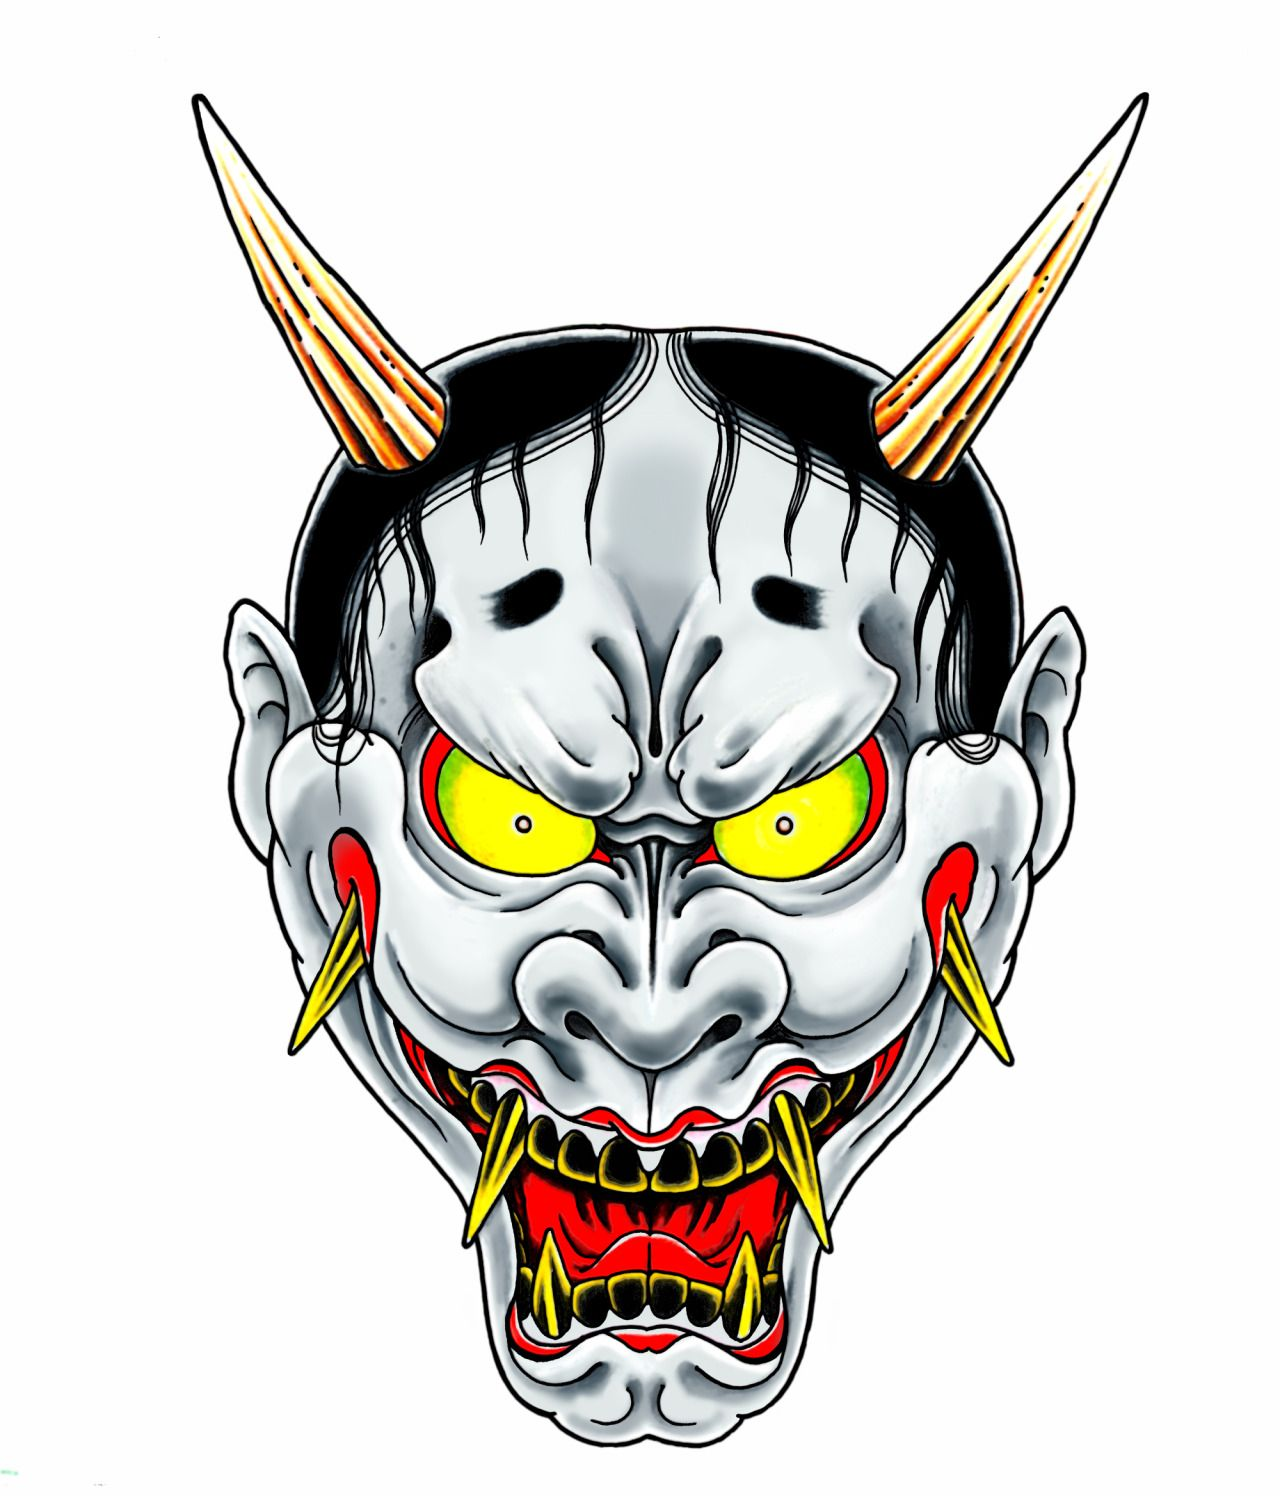 I'd love to base my next character model off this Hannya